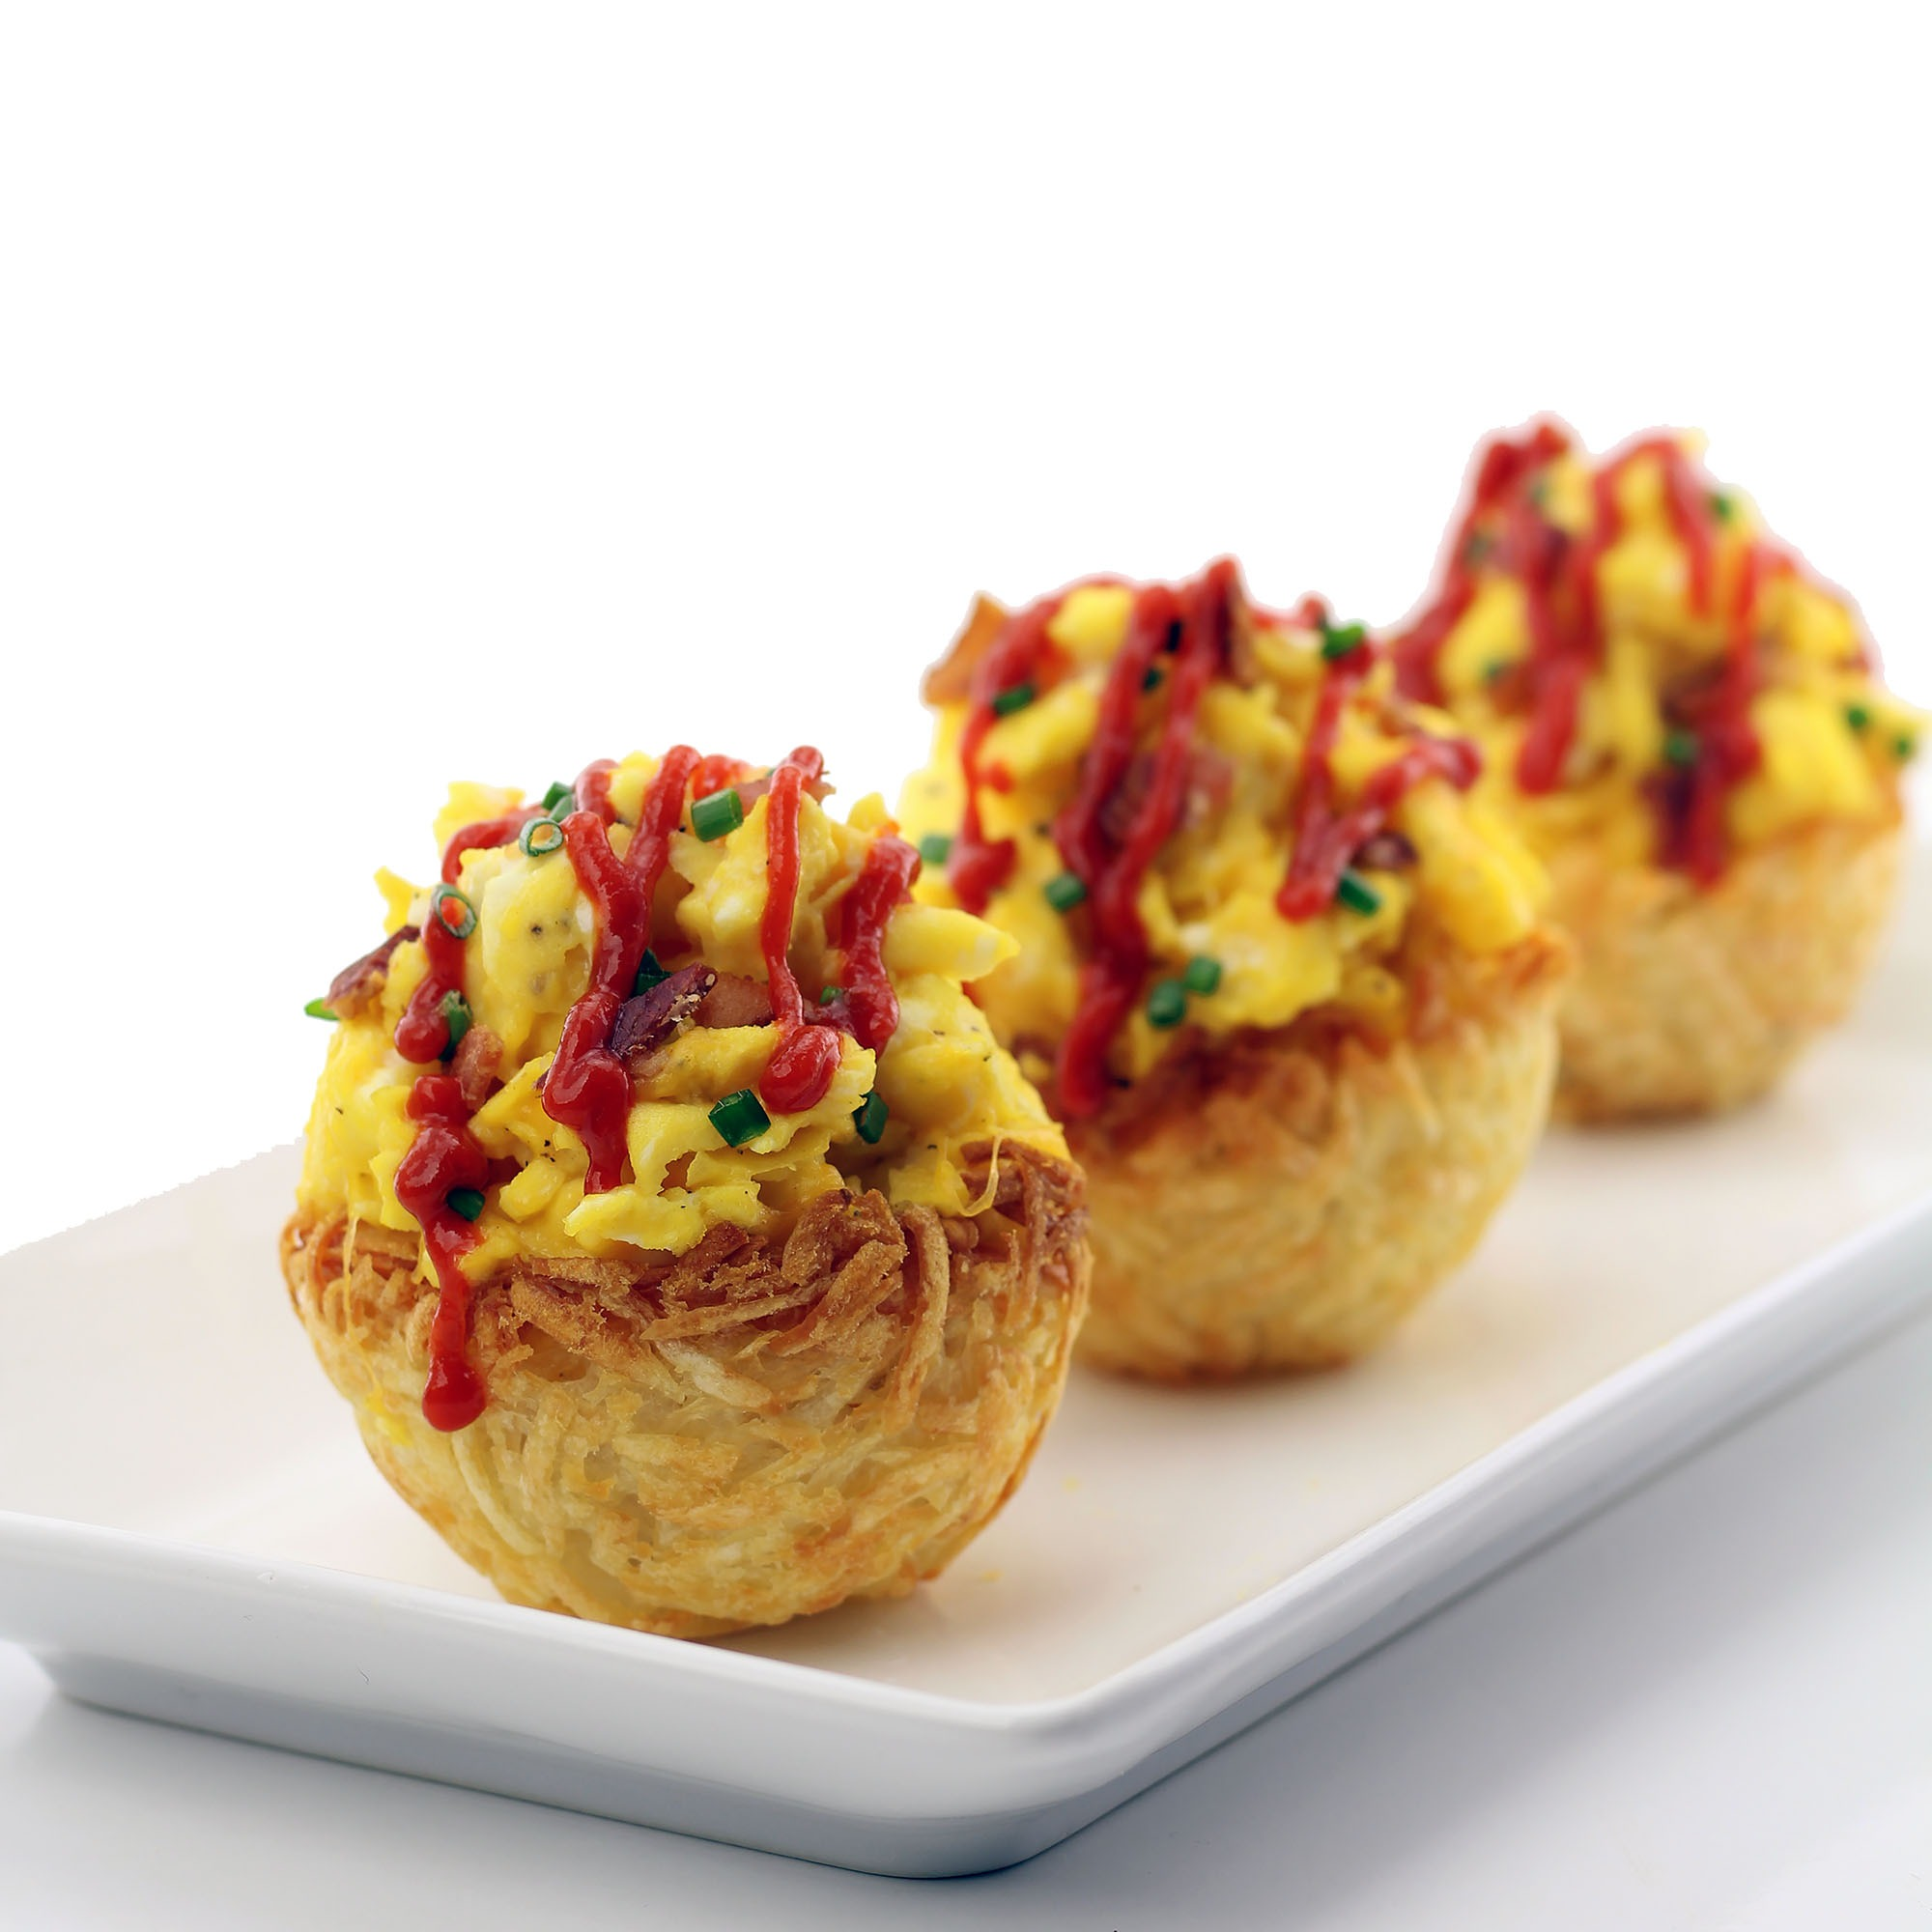 Scrambled Eggs in Edible Hashbrown Bowls